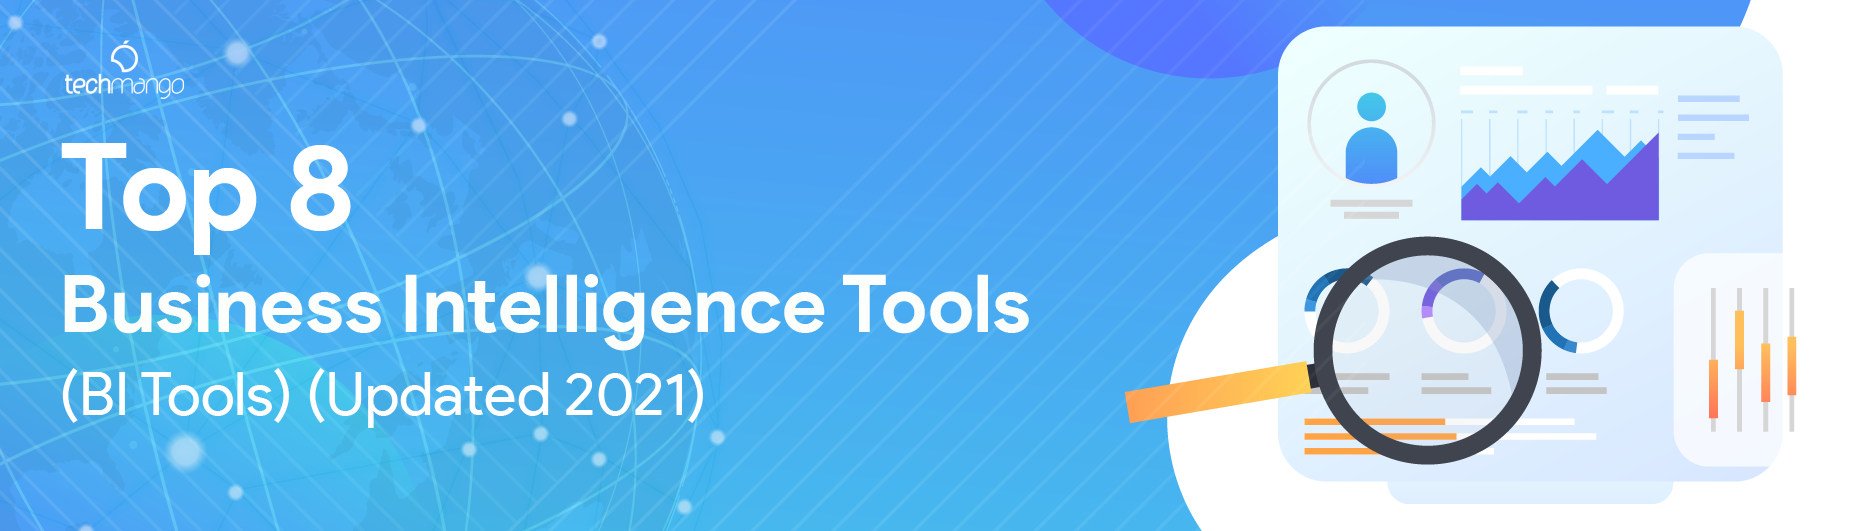 Top 8 Business Intelligence Tools